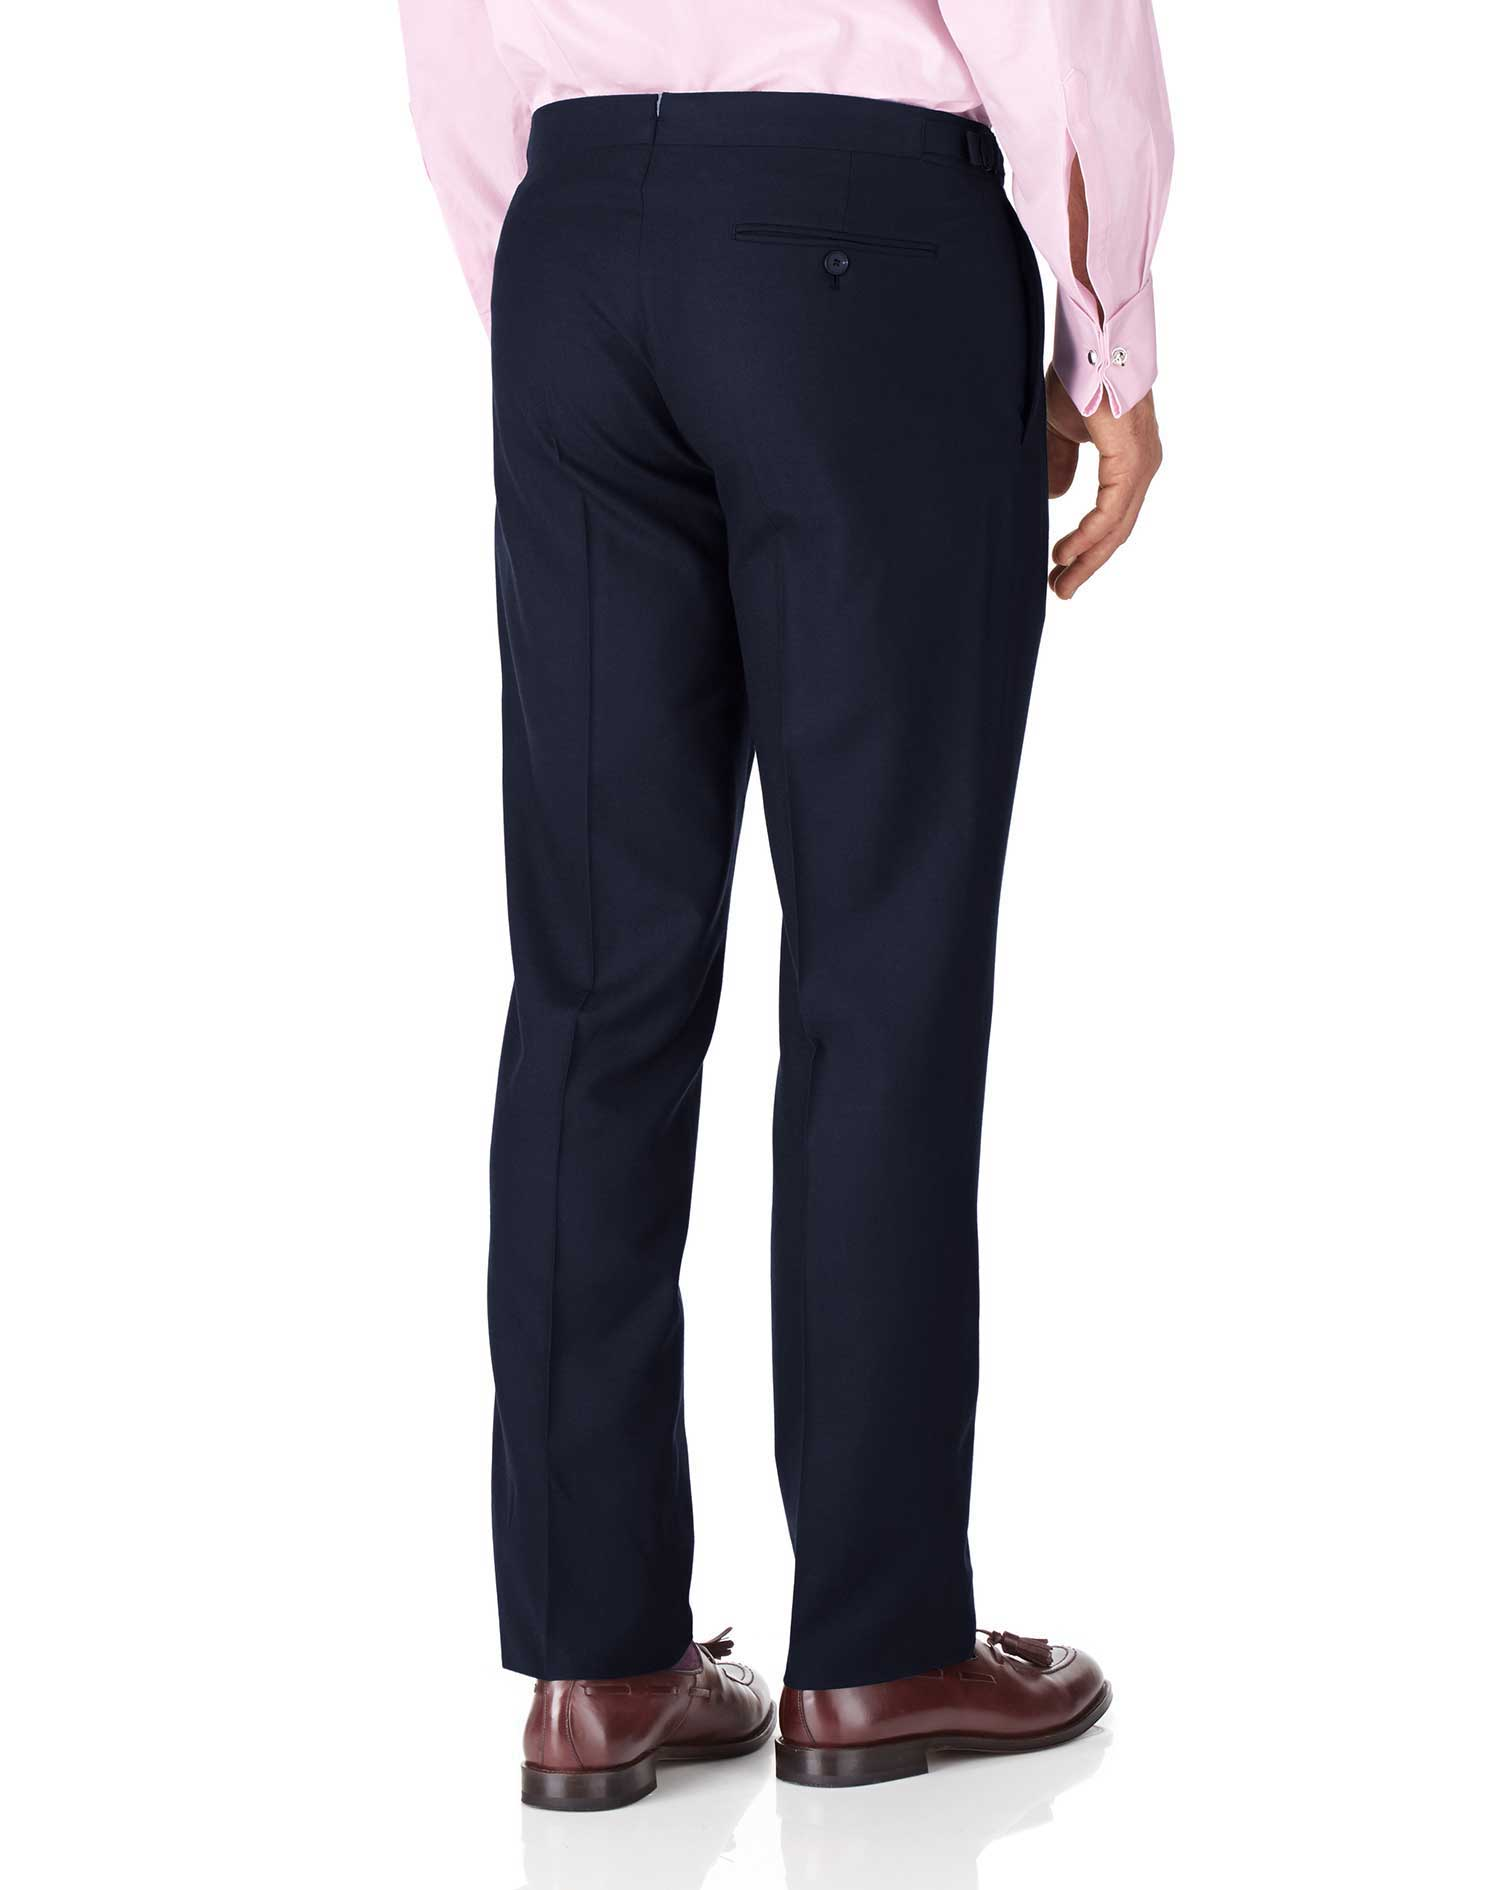 Navy classic fit British serge luxury suit pants